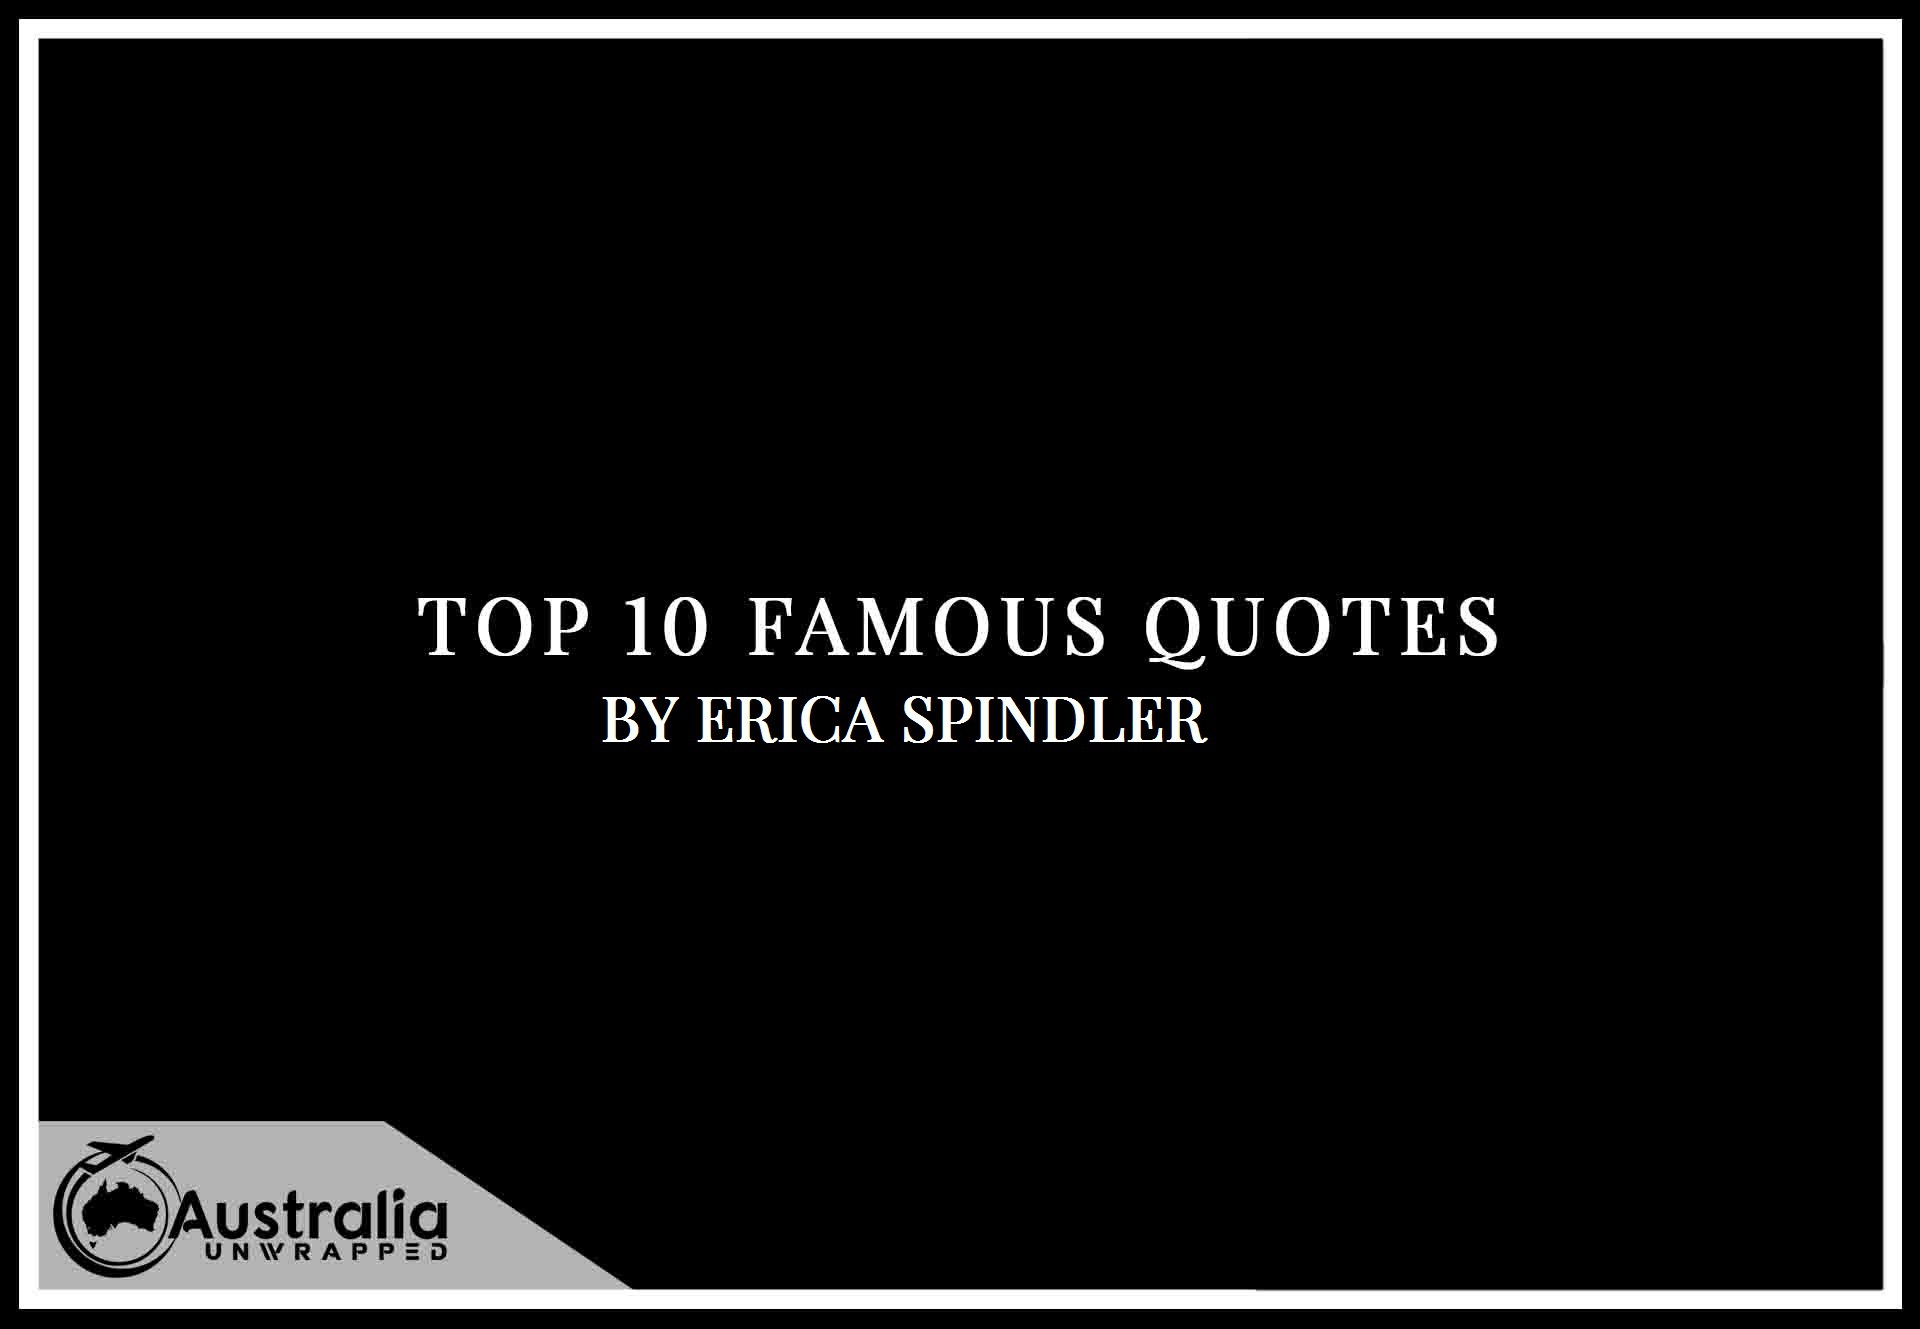 Erica Spindler's Top 10 Popular and Famous Quotes